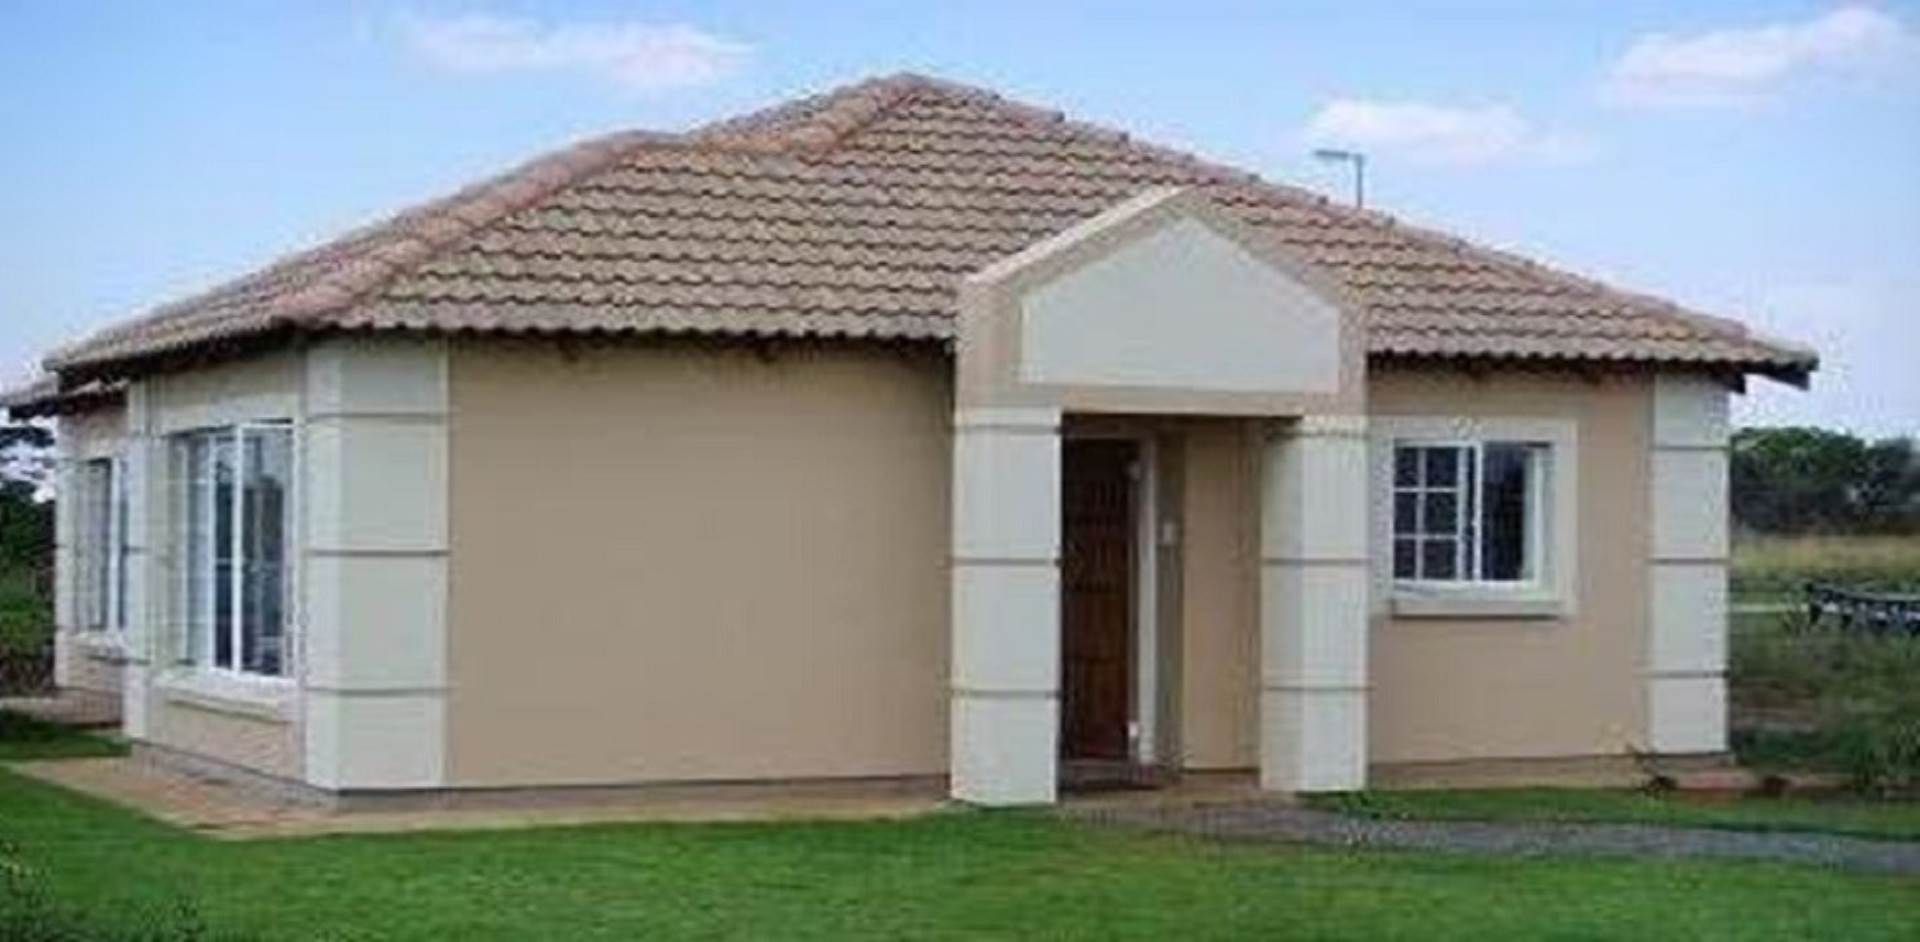 3 BedroomHouse For Sale In Nkwe Estate